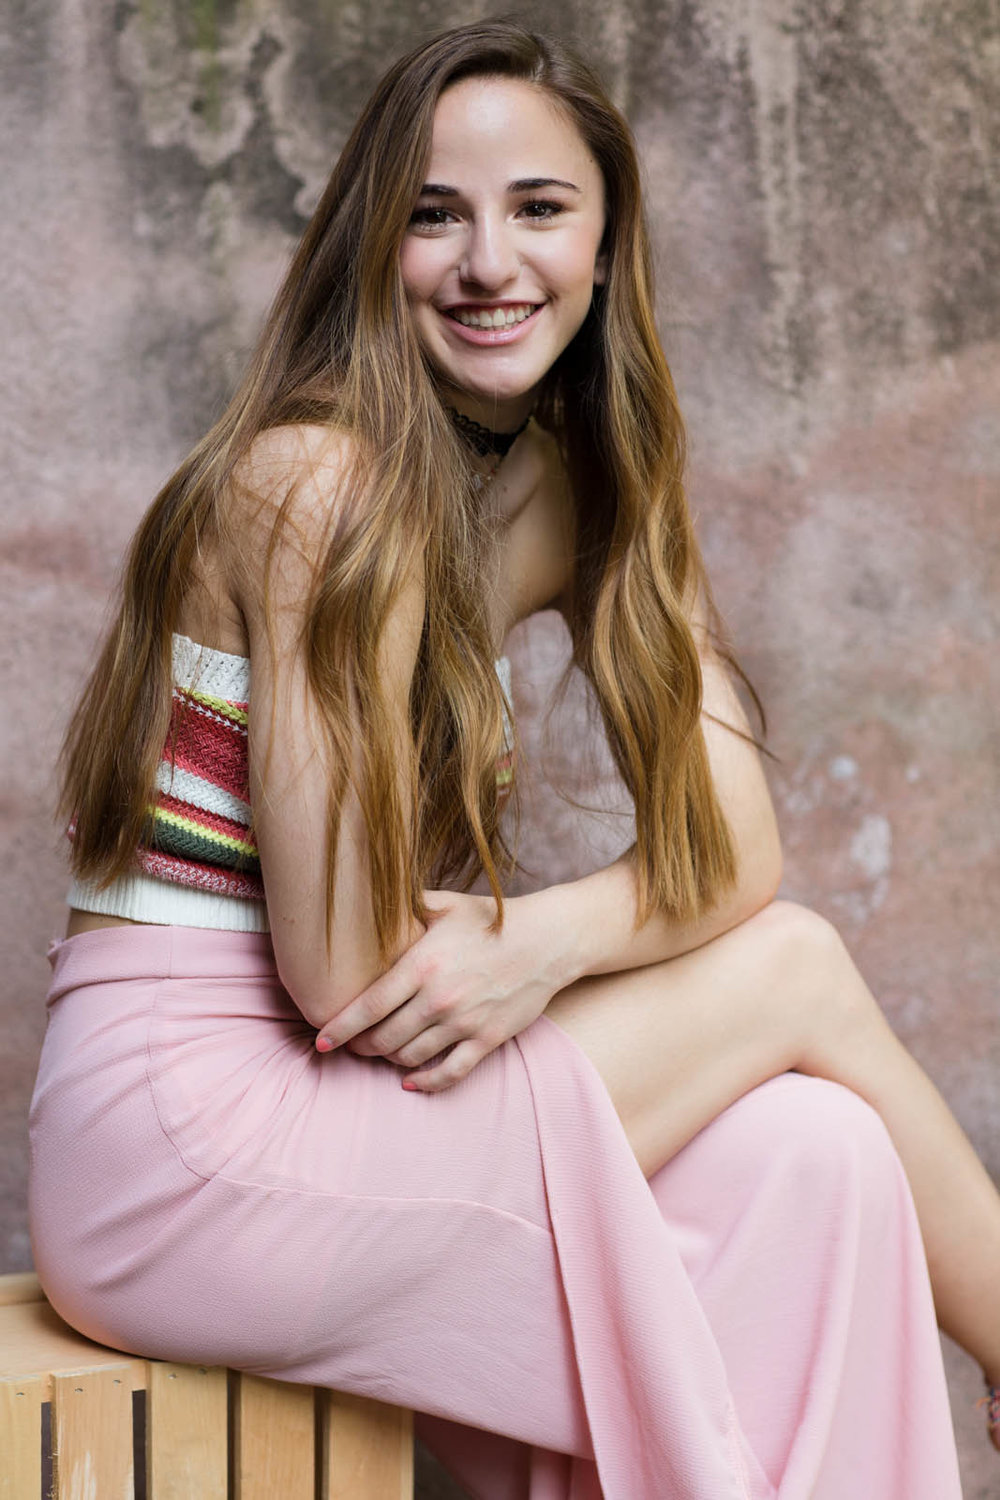 Girl pretty in pink senior picture